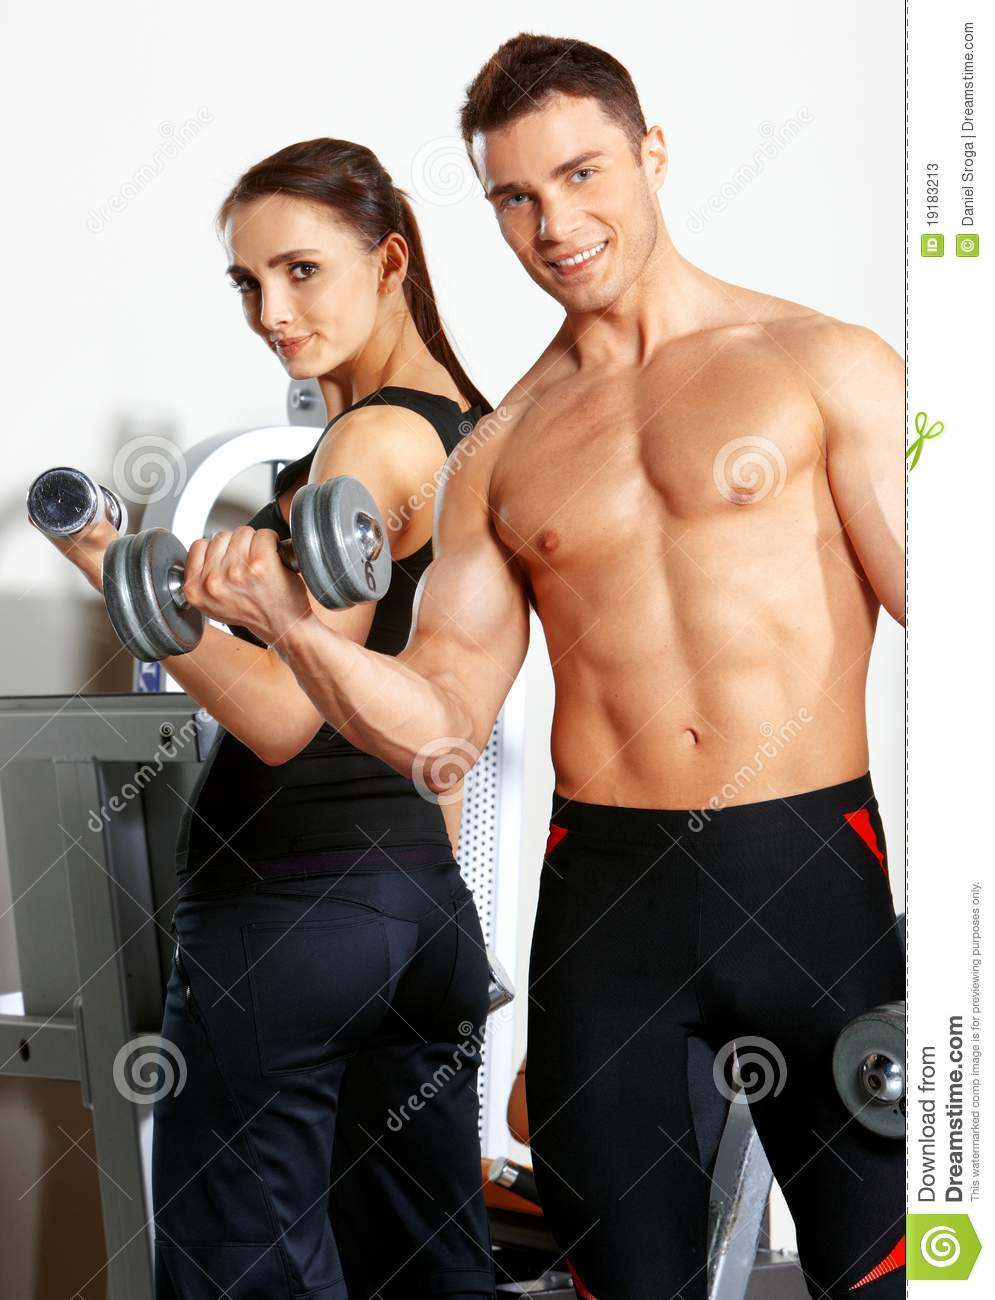 Physical Fitness Gym Business Plan Bplanscouk Couple At The Gym Stock Photos Image 19183213